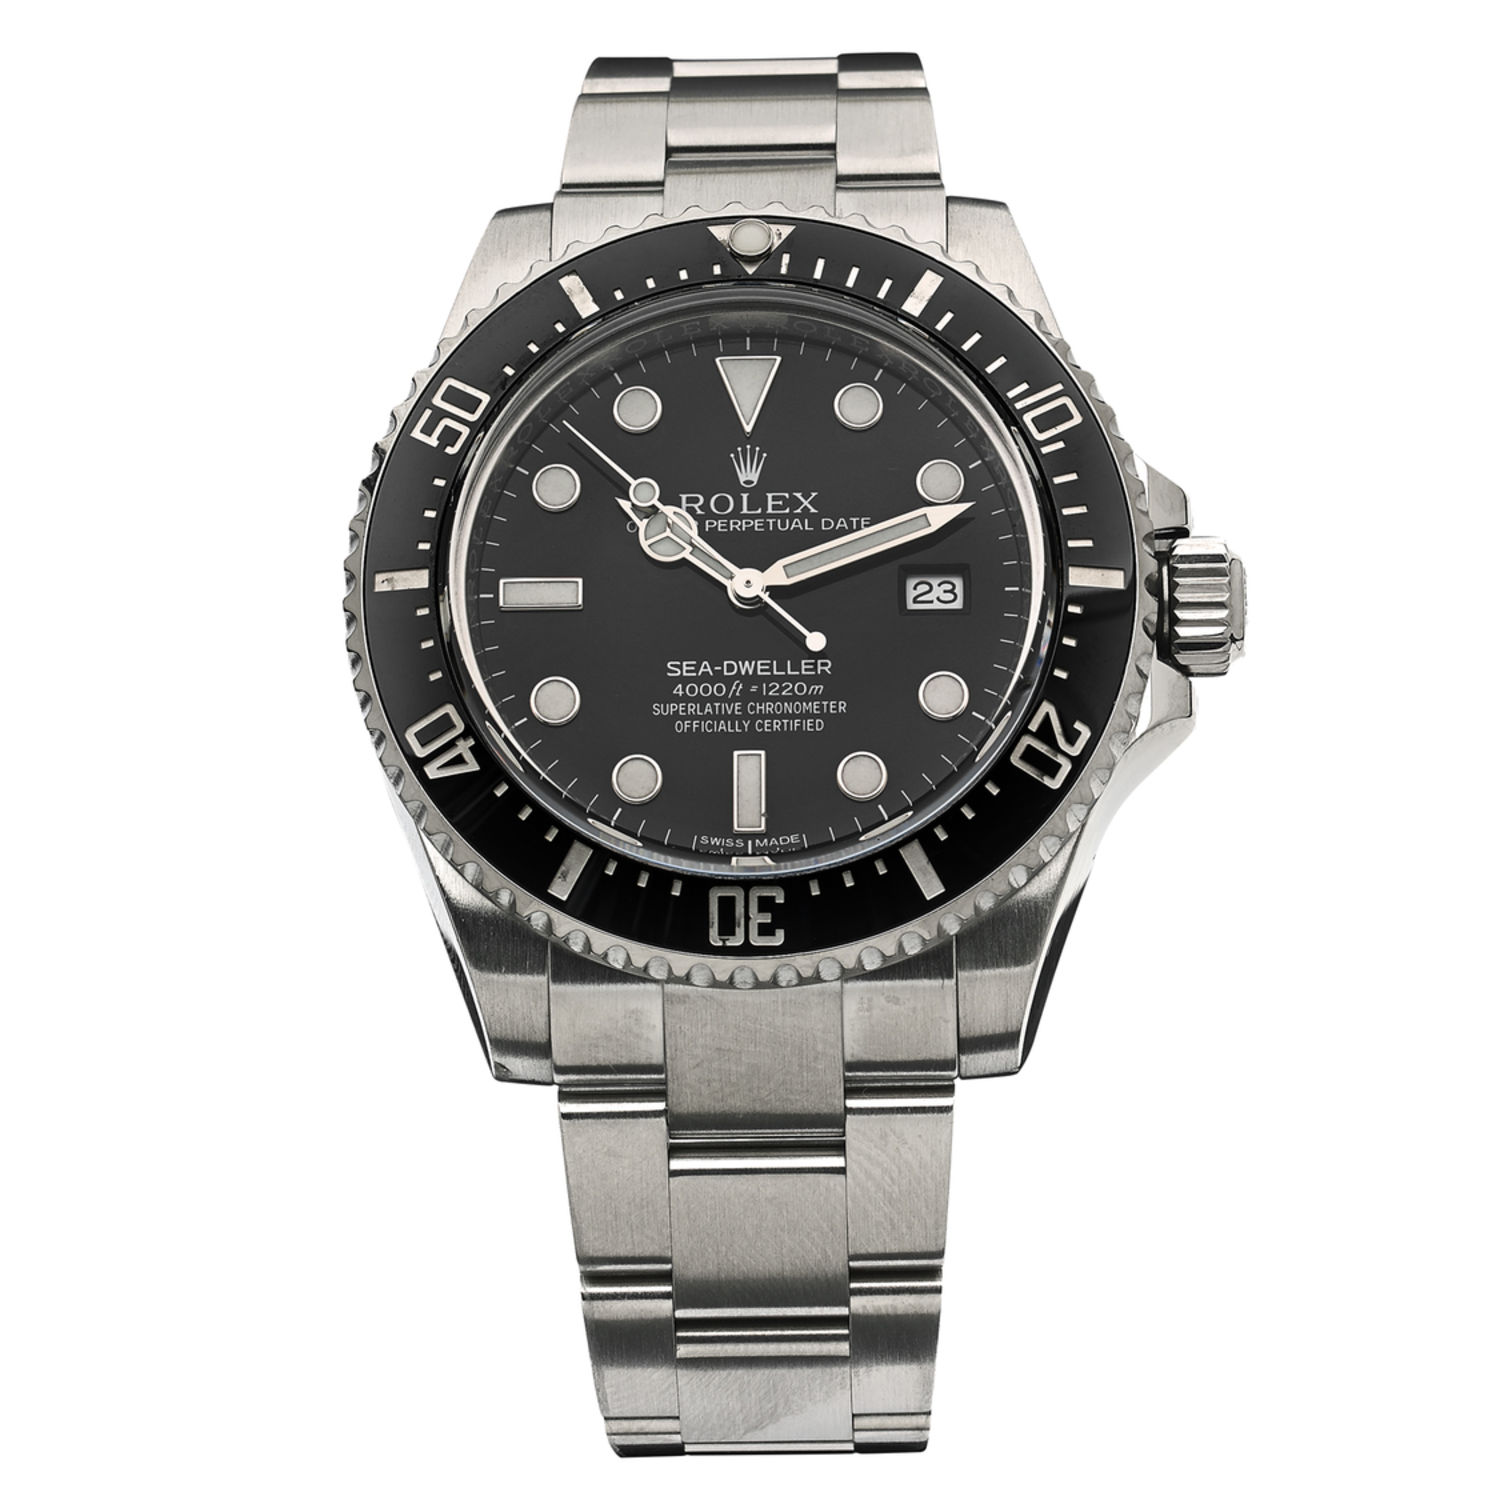 Montre Rolex Oyster Perpetual Sea-Dweller